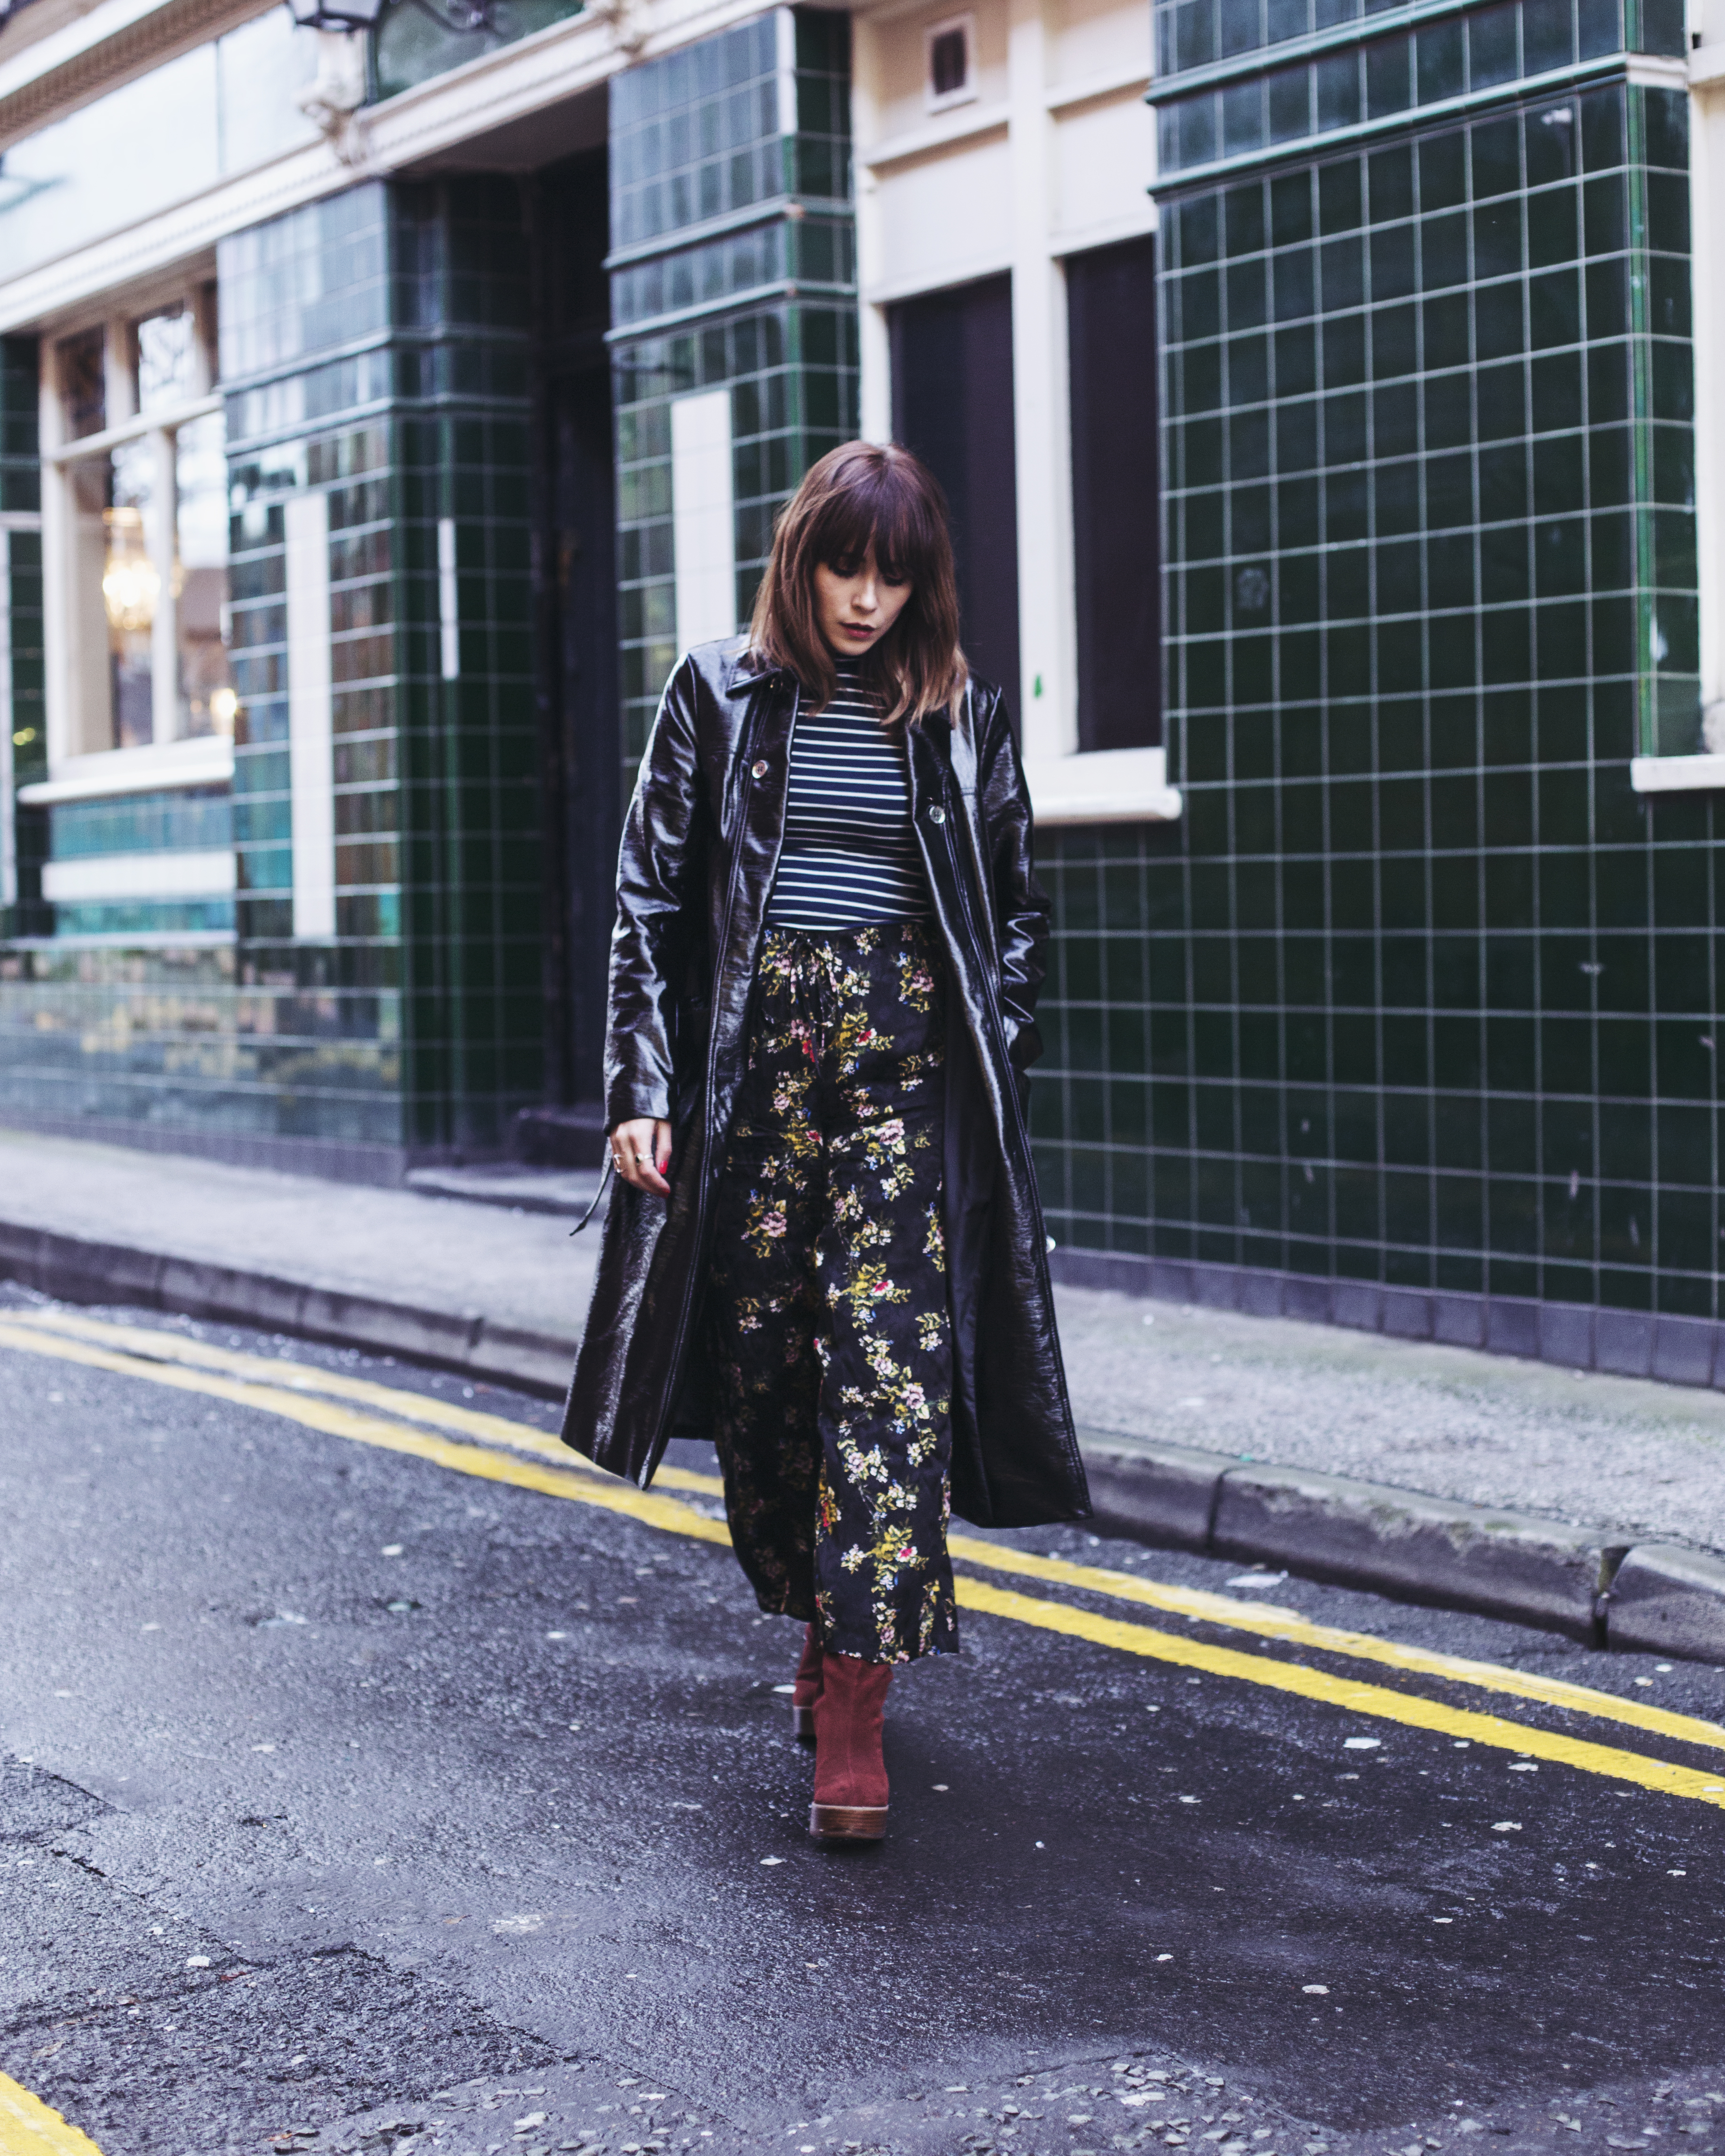 MEGAN ELLABY WEARS URBAN OUTFITTERS FLARED TROUSERS IN FLORAL PRINT